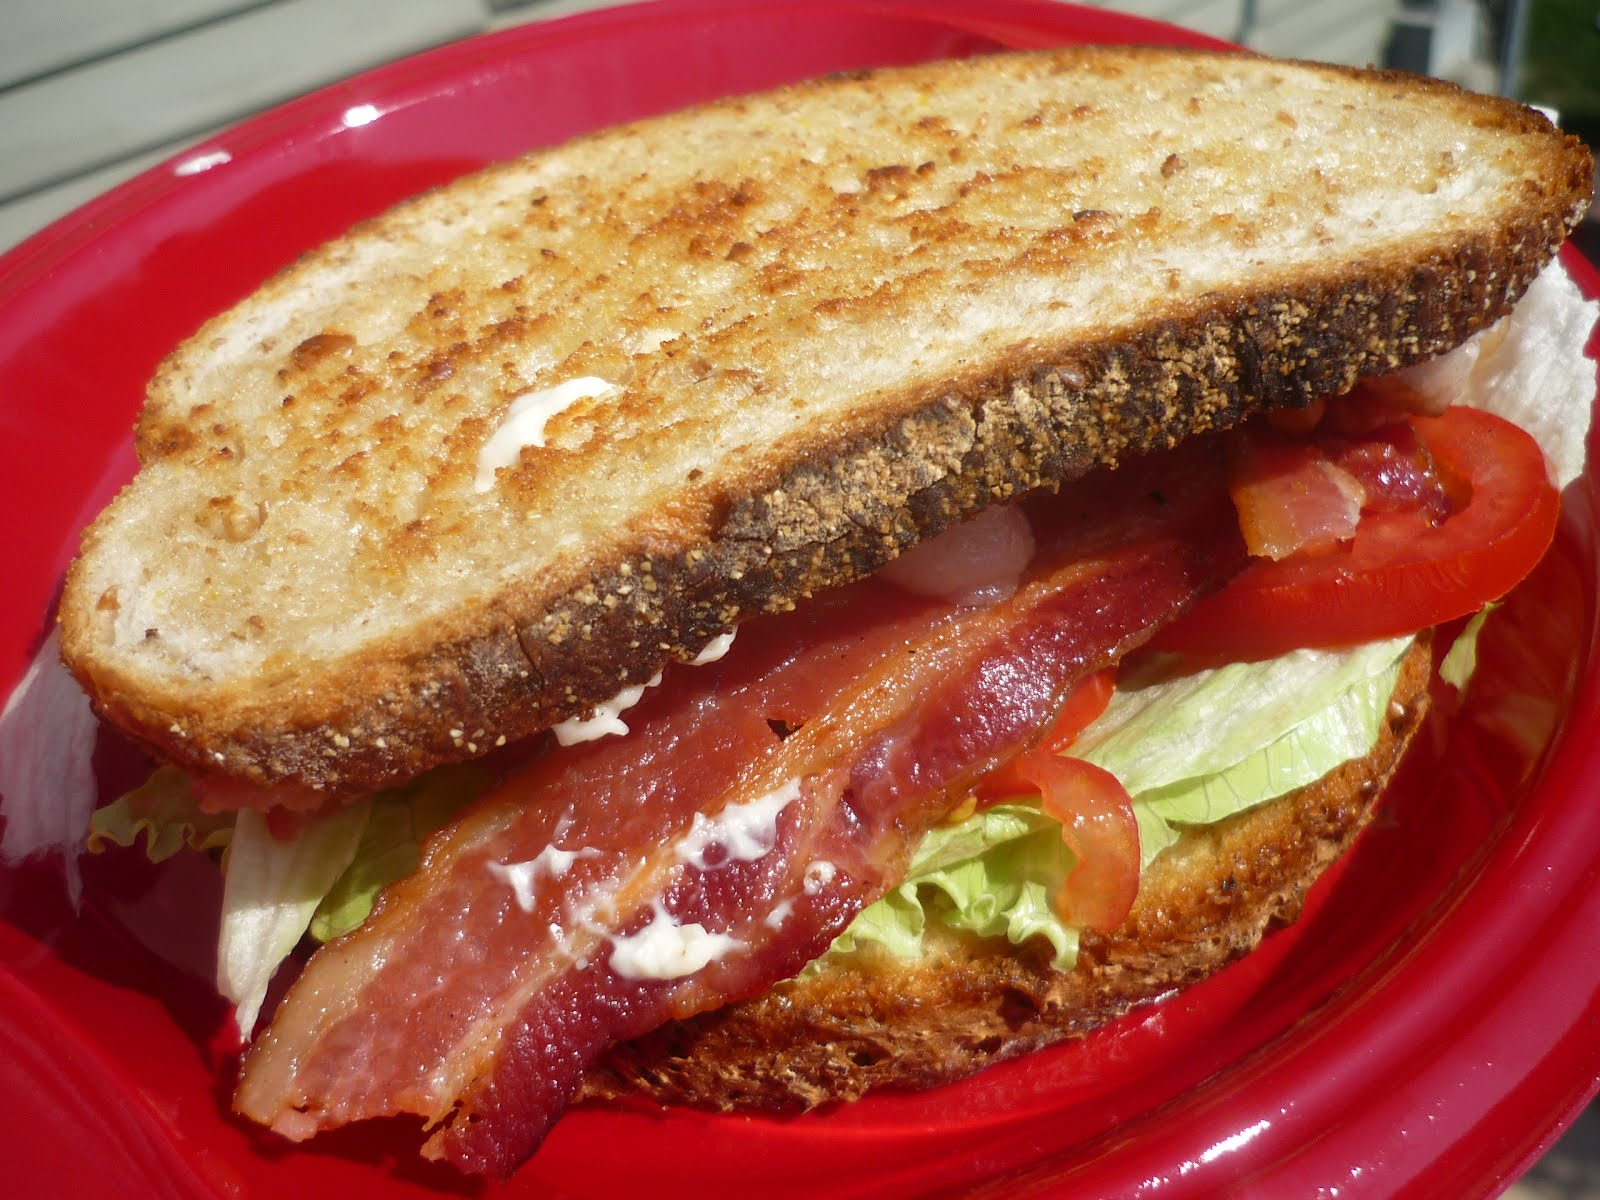 Z1OqqelrGys likewise Full Of Baloney together with 38378 likewise Random Holiday Awesomeness likewise Art Of Blt. on oscar meyer sandwich meat